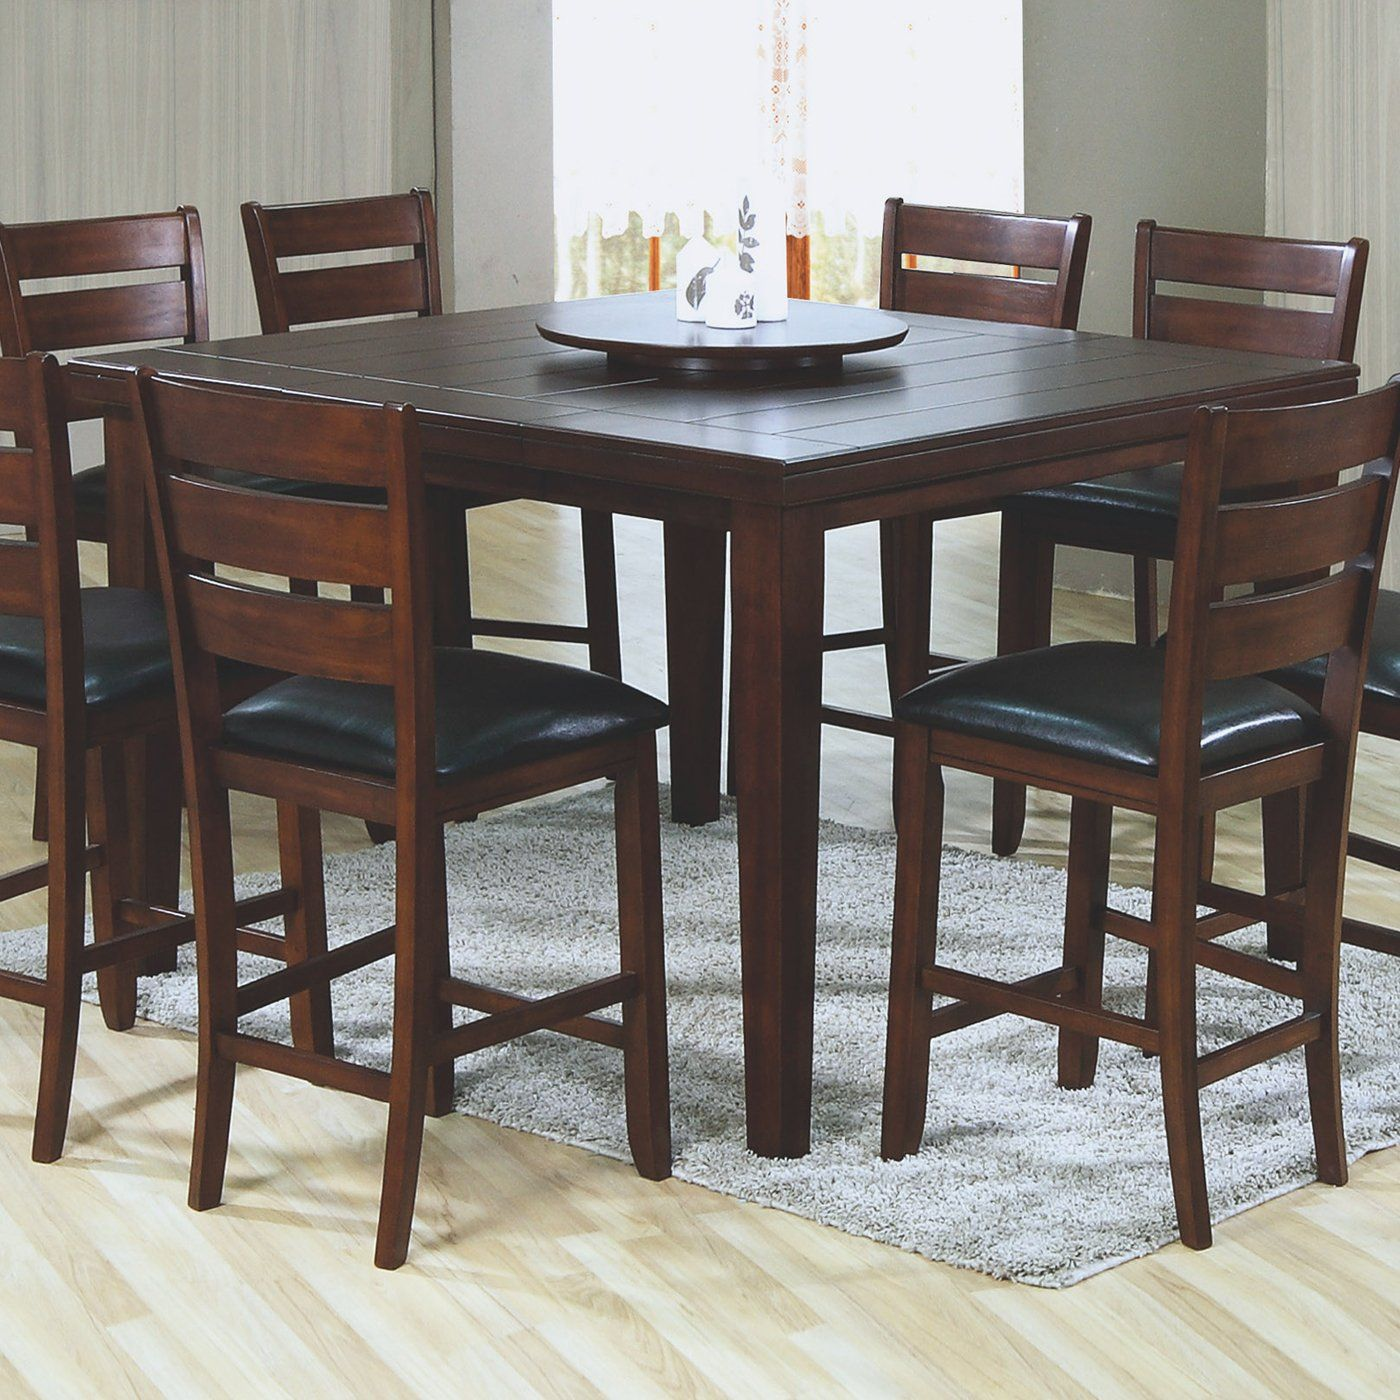 chairs size furniture set and tablend outdoor glass for bar full sets tople kitchen walmart of high table target hightop chair top